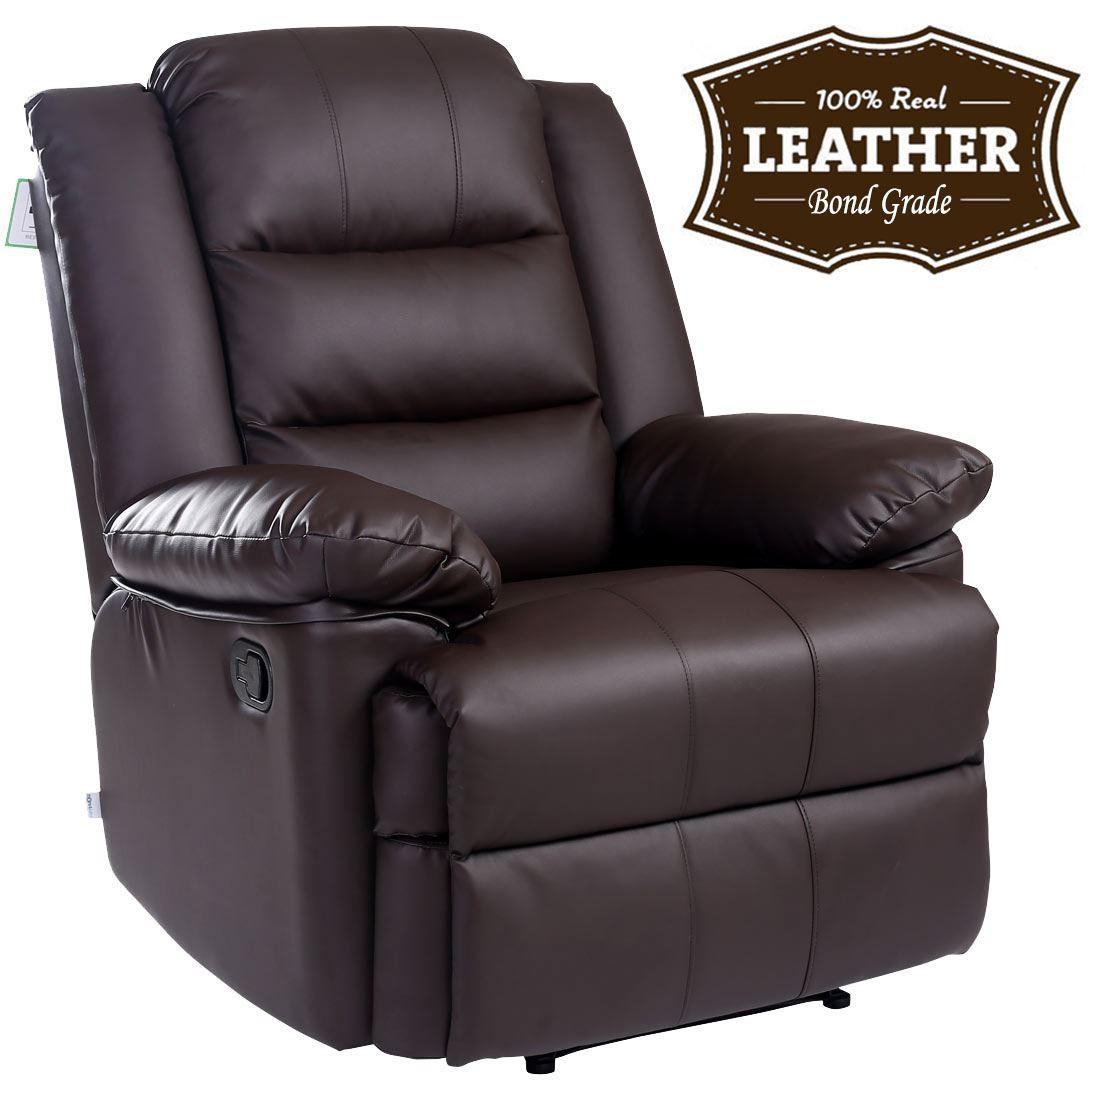 Arm Chair Recliner ~ Uballs For Sofa Chair Recliner (Image 1 of 20)